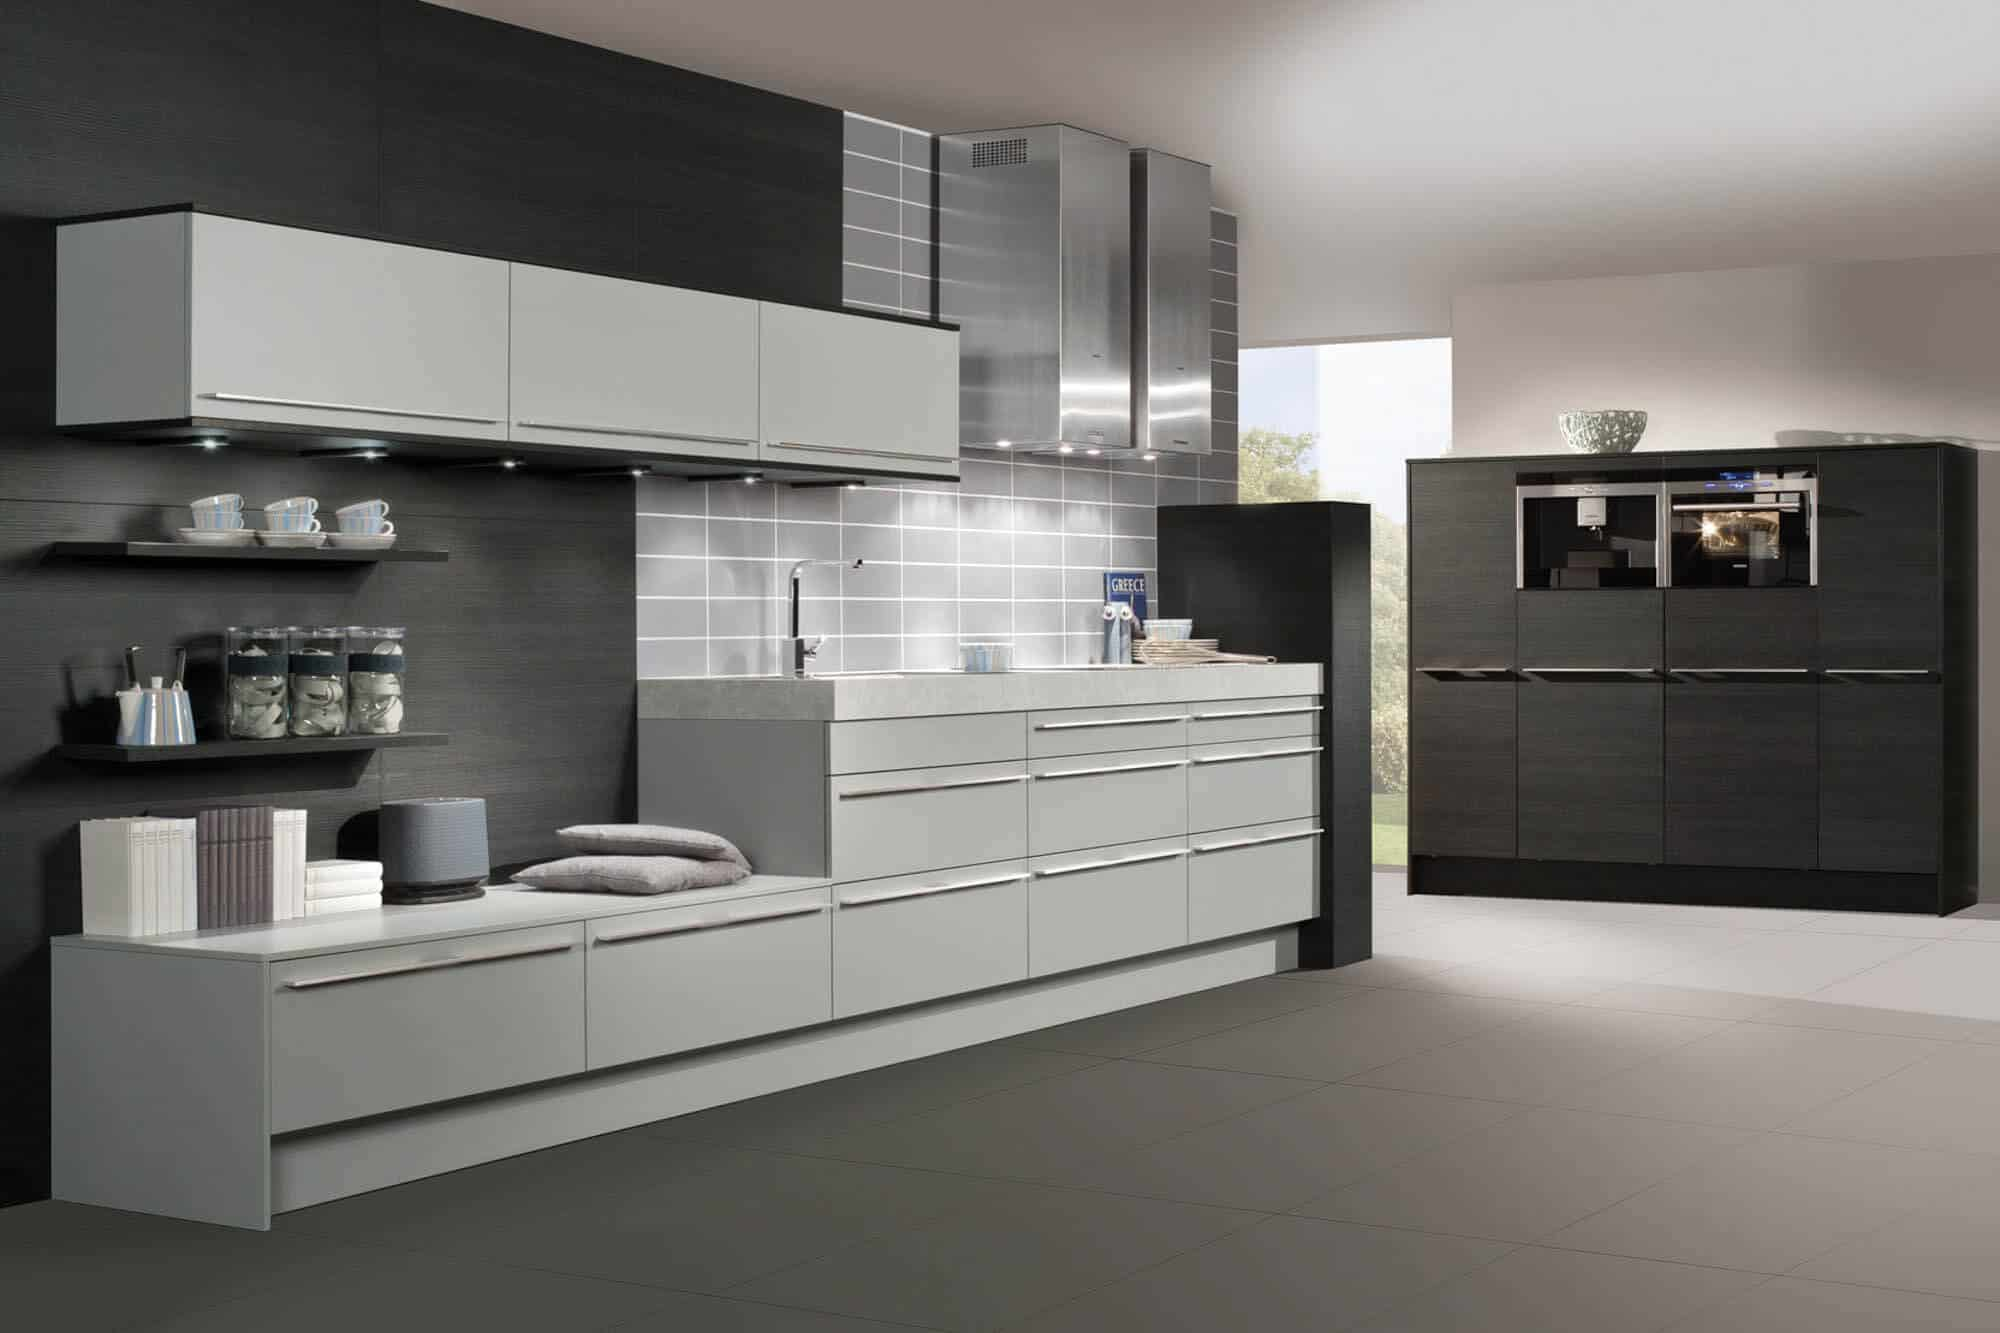 A Two Tiered Concealed Kitchen Works Great For Clean Lofts And Small Houses